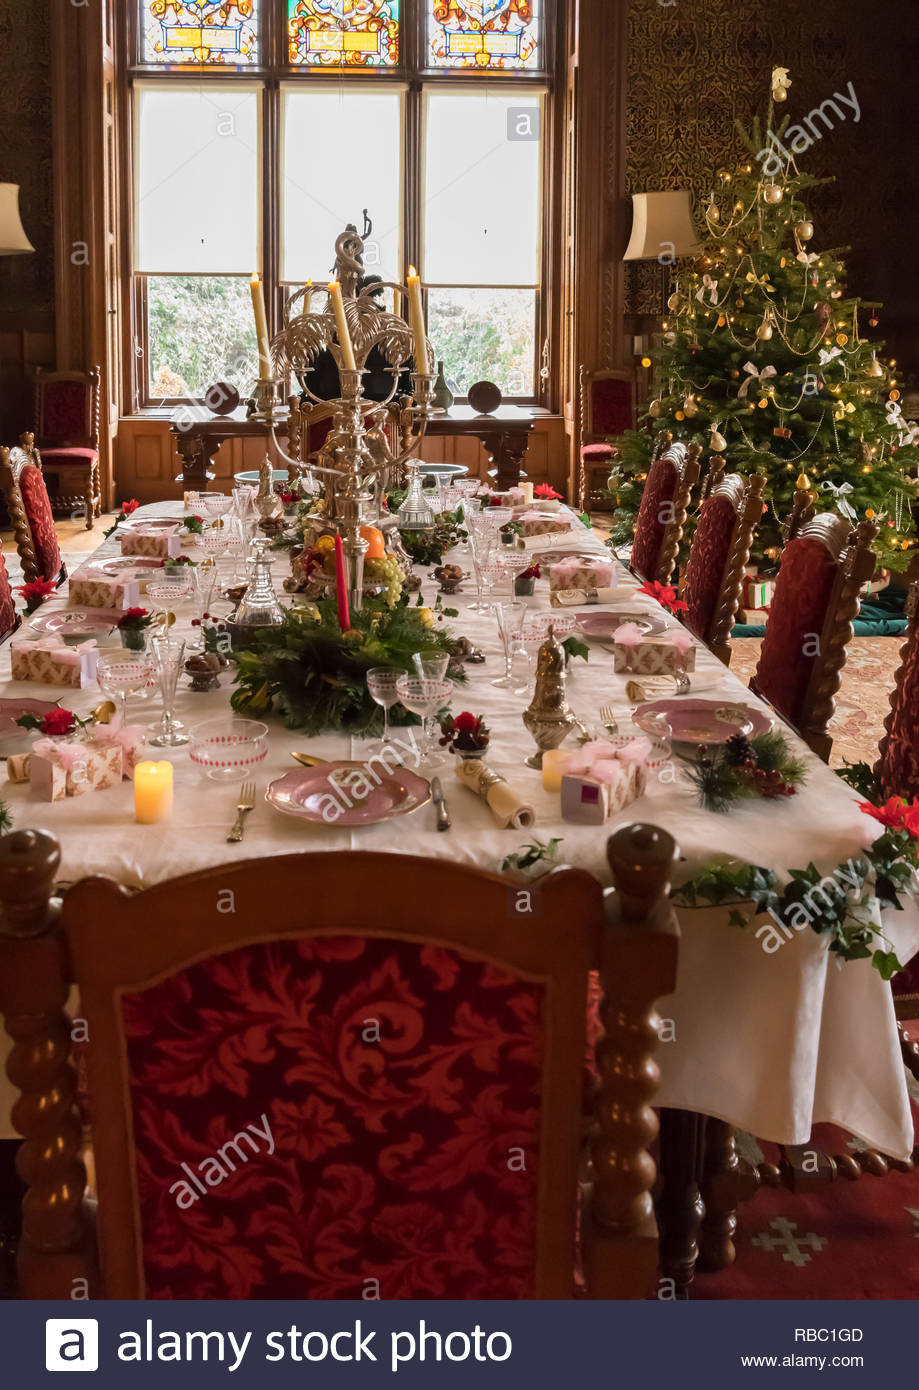 A grand Christmas table laid with a candlestick, decorations and a tree inside Charlecote Park. - Stock Image